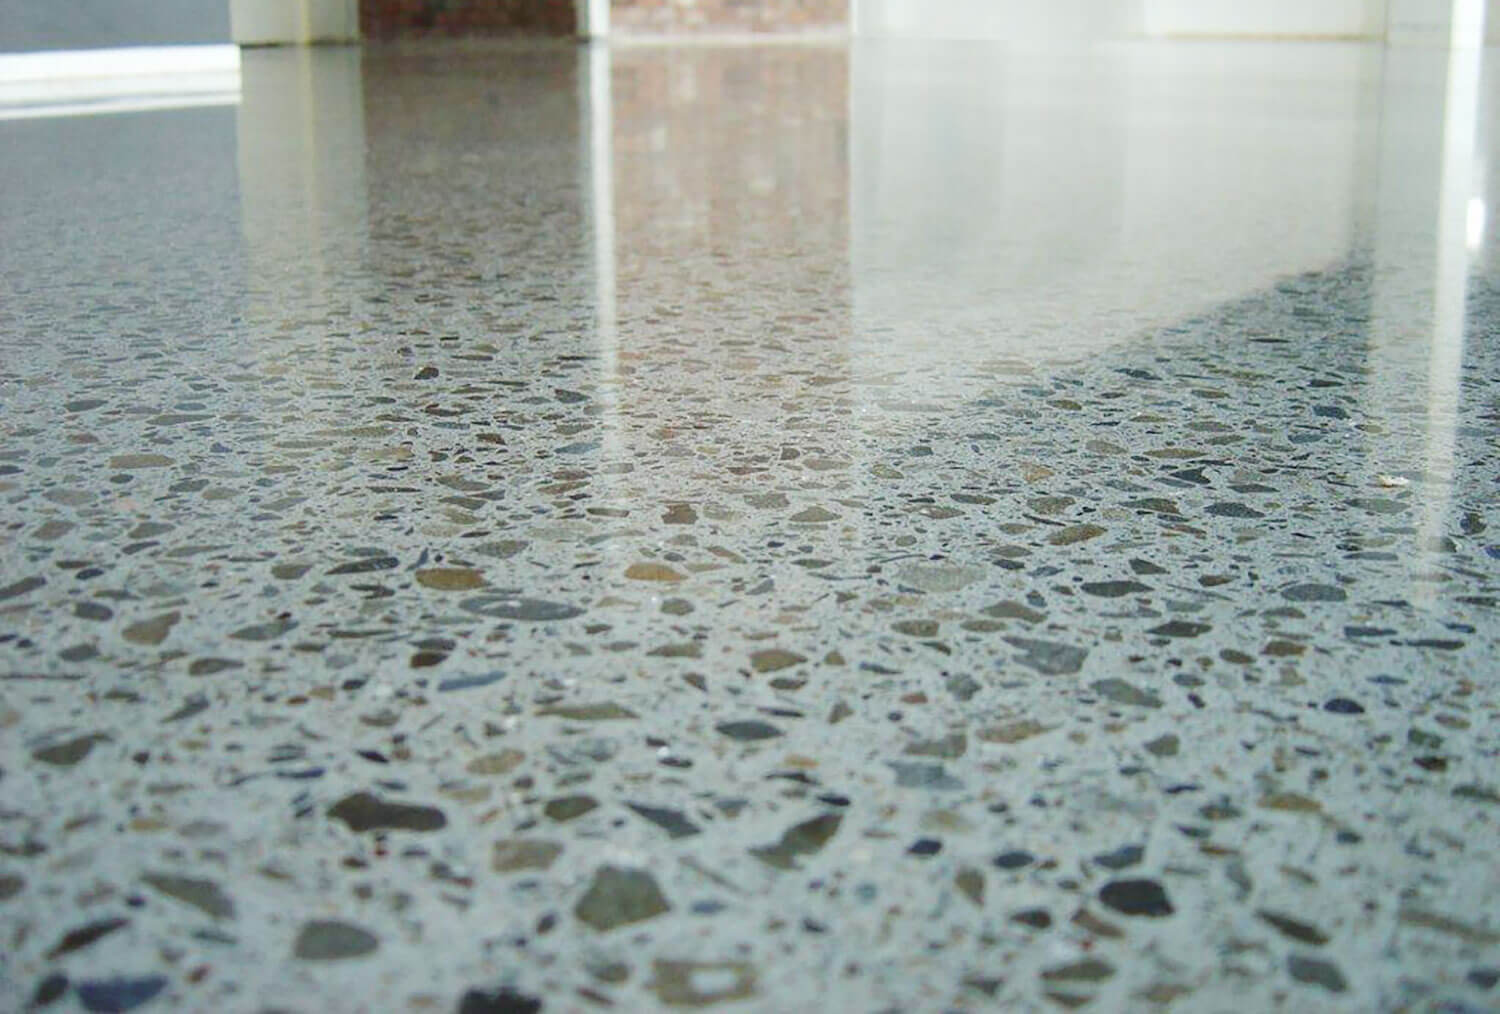 polished concrete floor looks super shiny after being cleaned and sealed